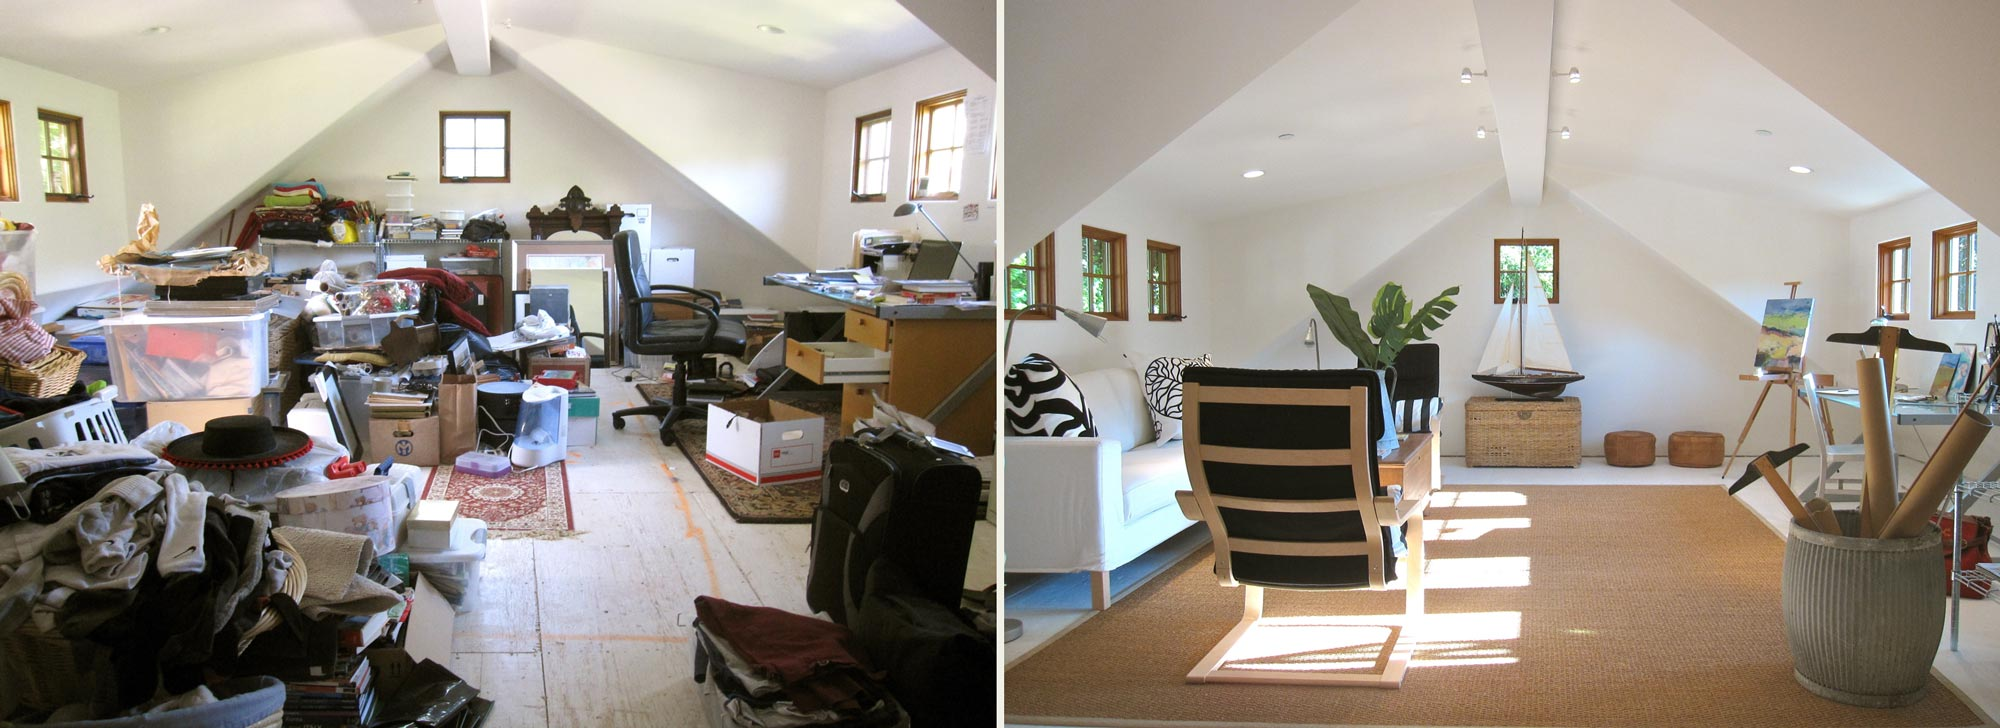 cary-nowell-staging-before-after-7.jpg